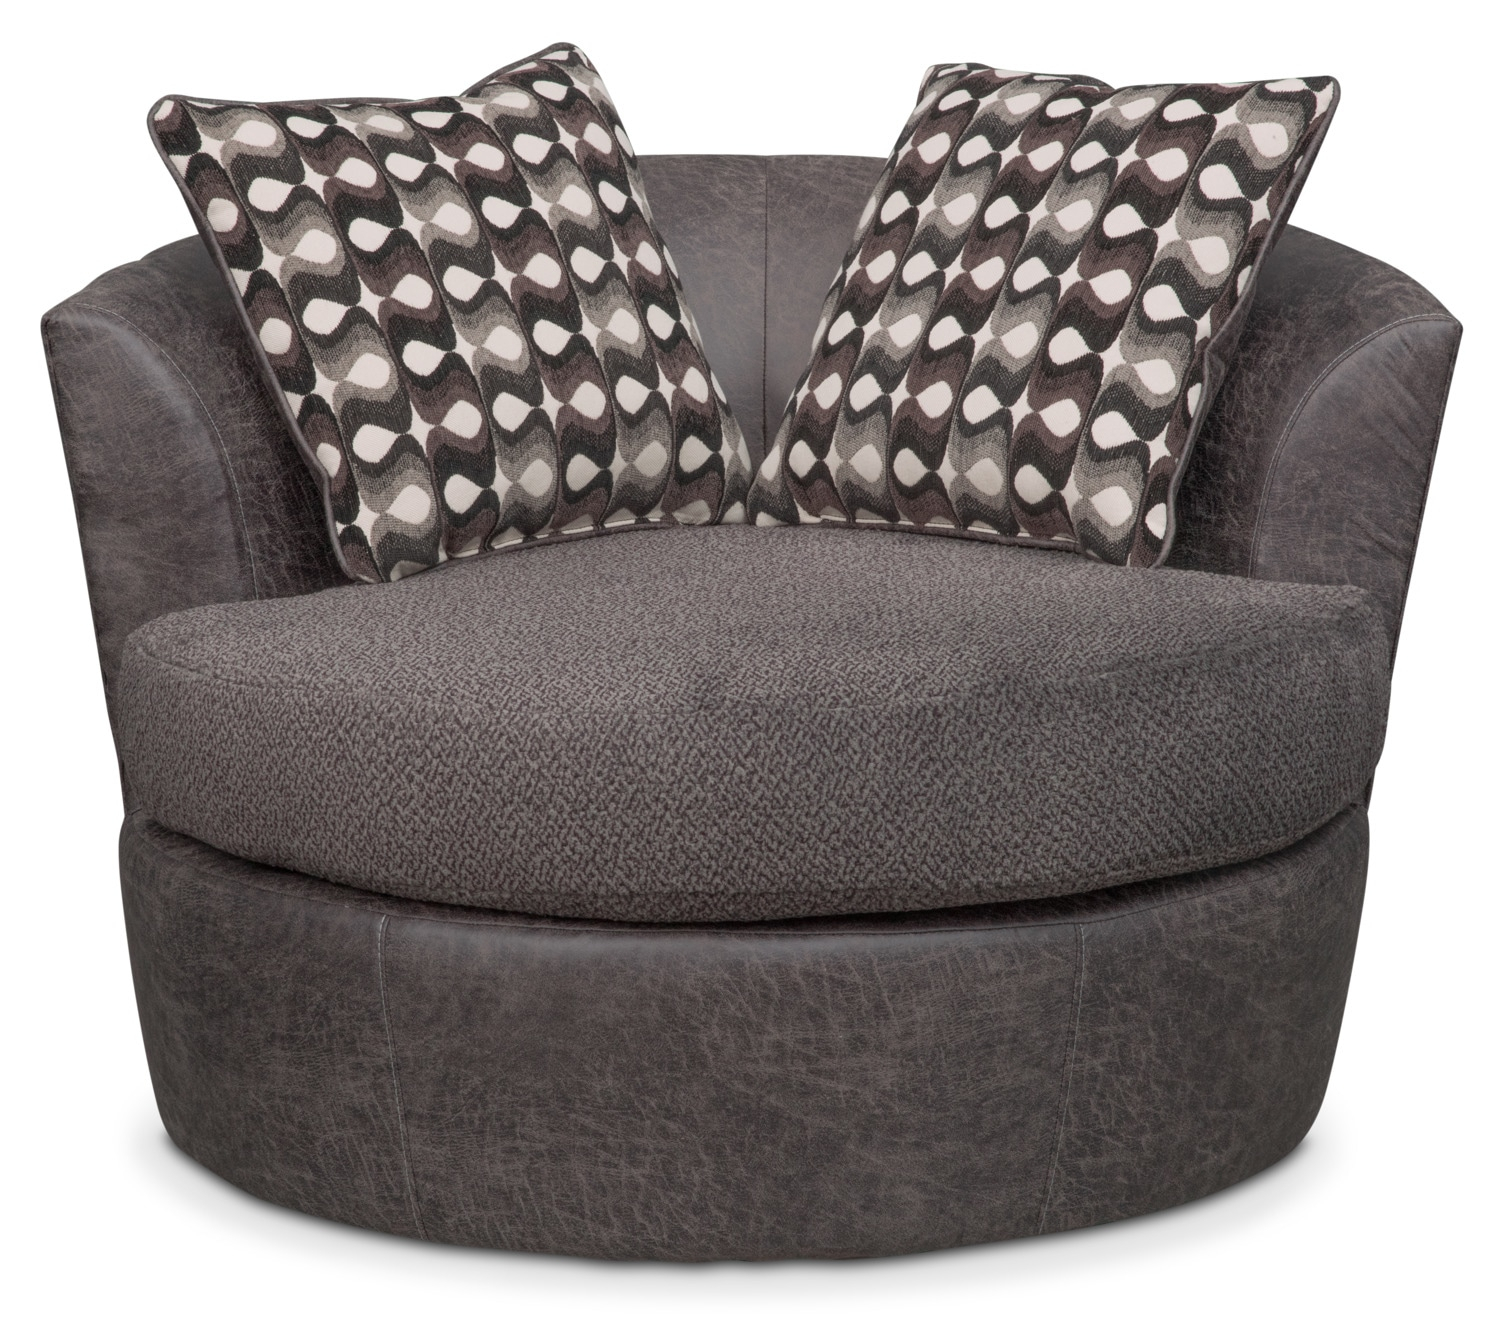 Brando Swivel Swivel Chair | Value City Furniture And Mattresses Within Loft Smokey Swivel Accent Chairs (Image 8 of 20)